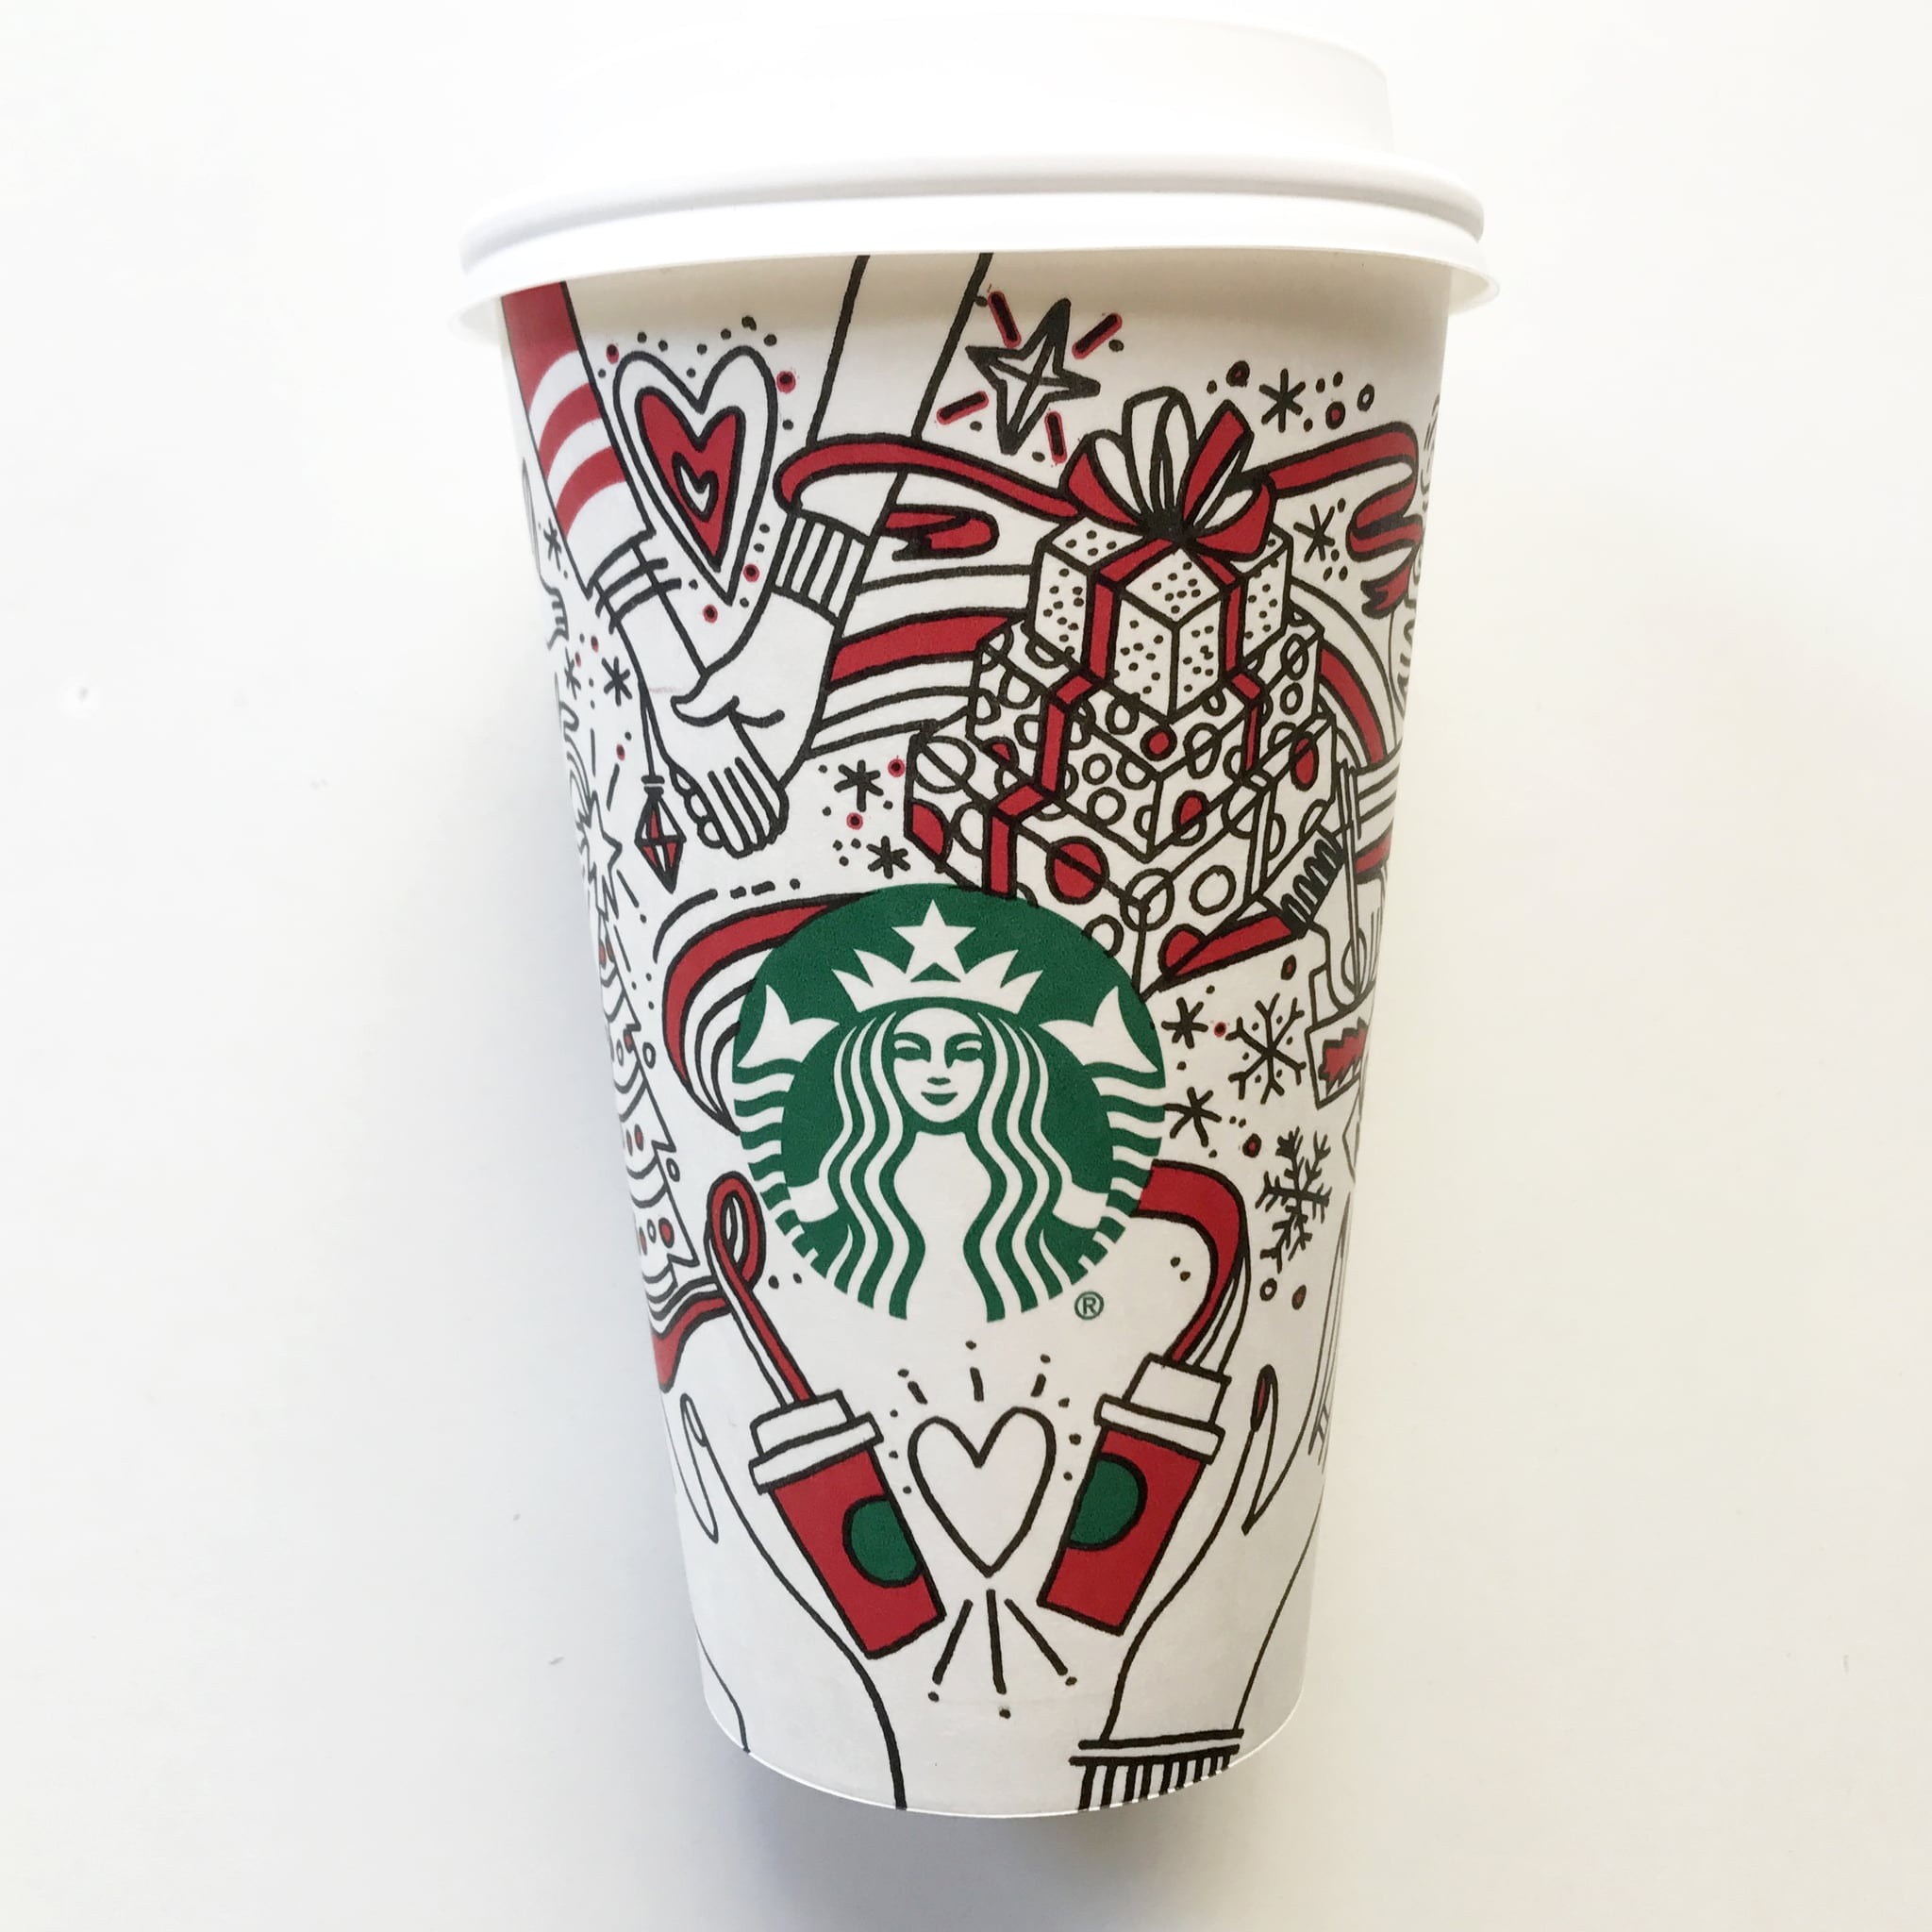 You are the artist of this year's Starbucks 'red cups'